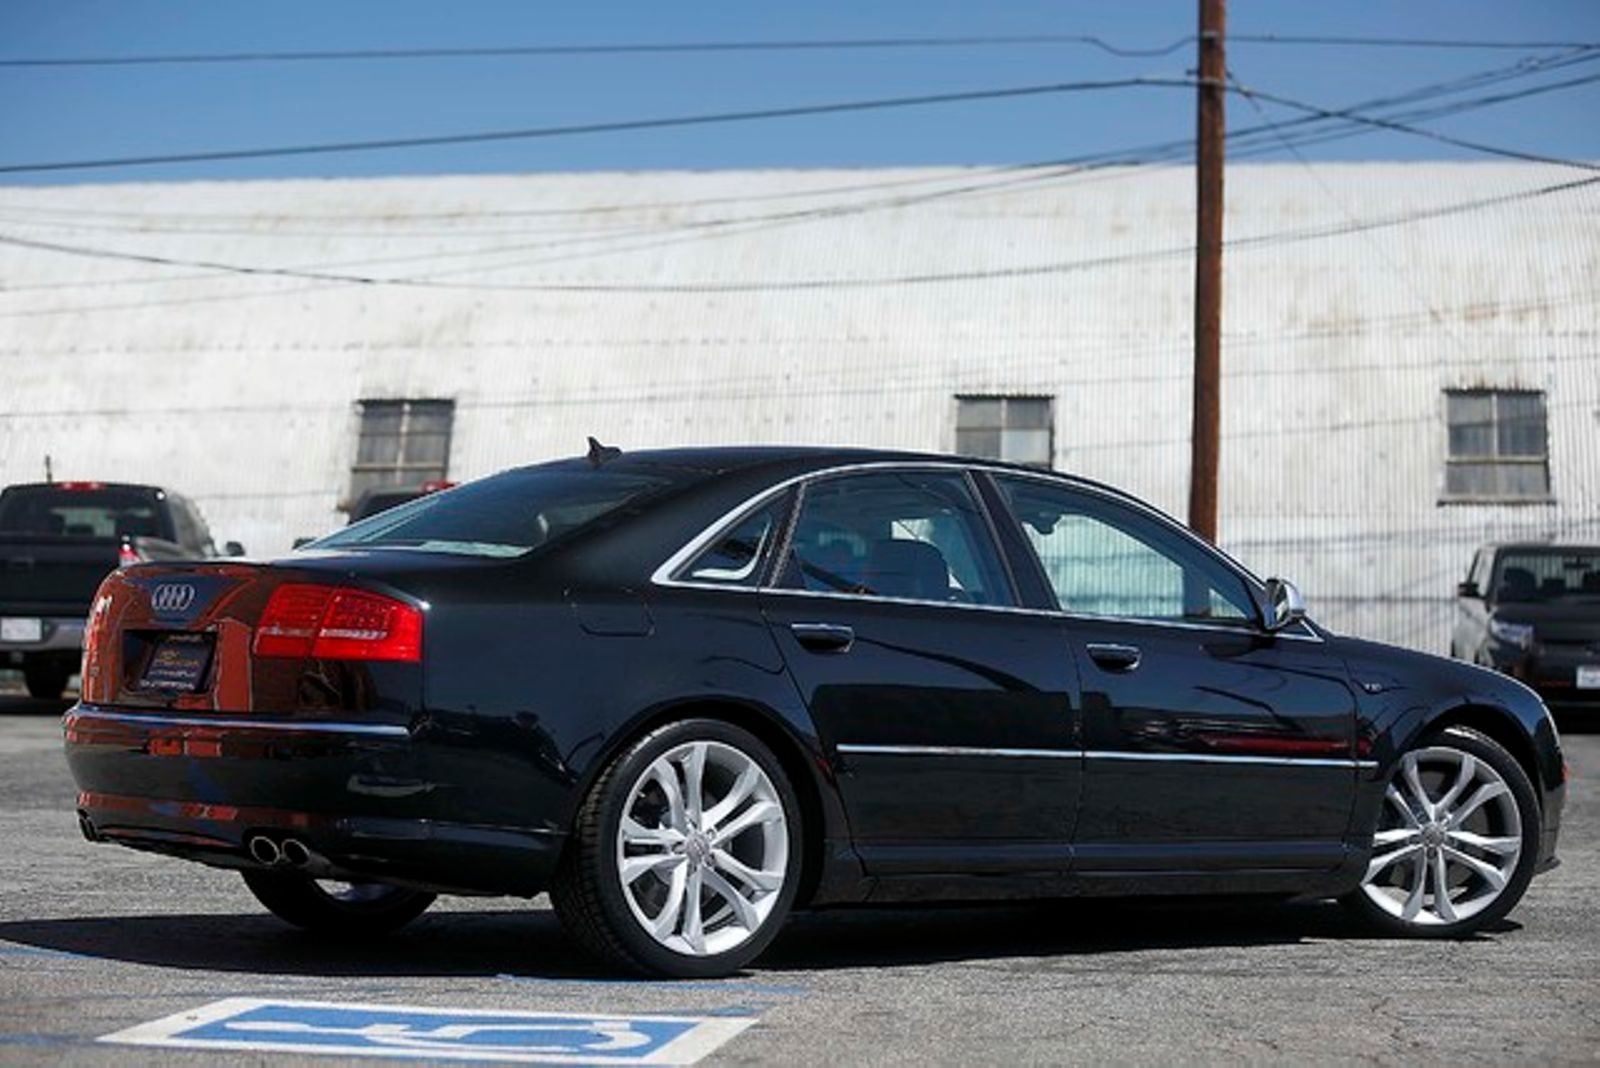 2009 audi s8 52l v10 bose 55k miles city california mdk international. Black Bedroom Furniture Sets. Home Design Ideas